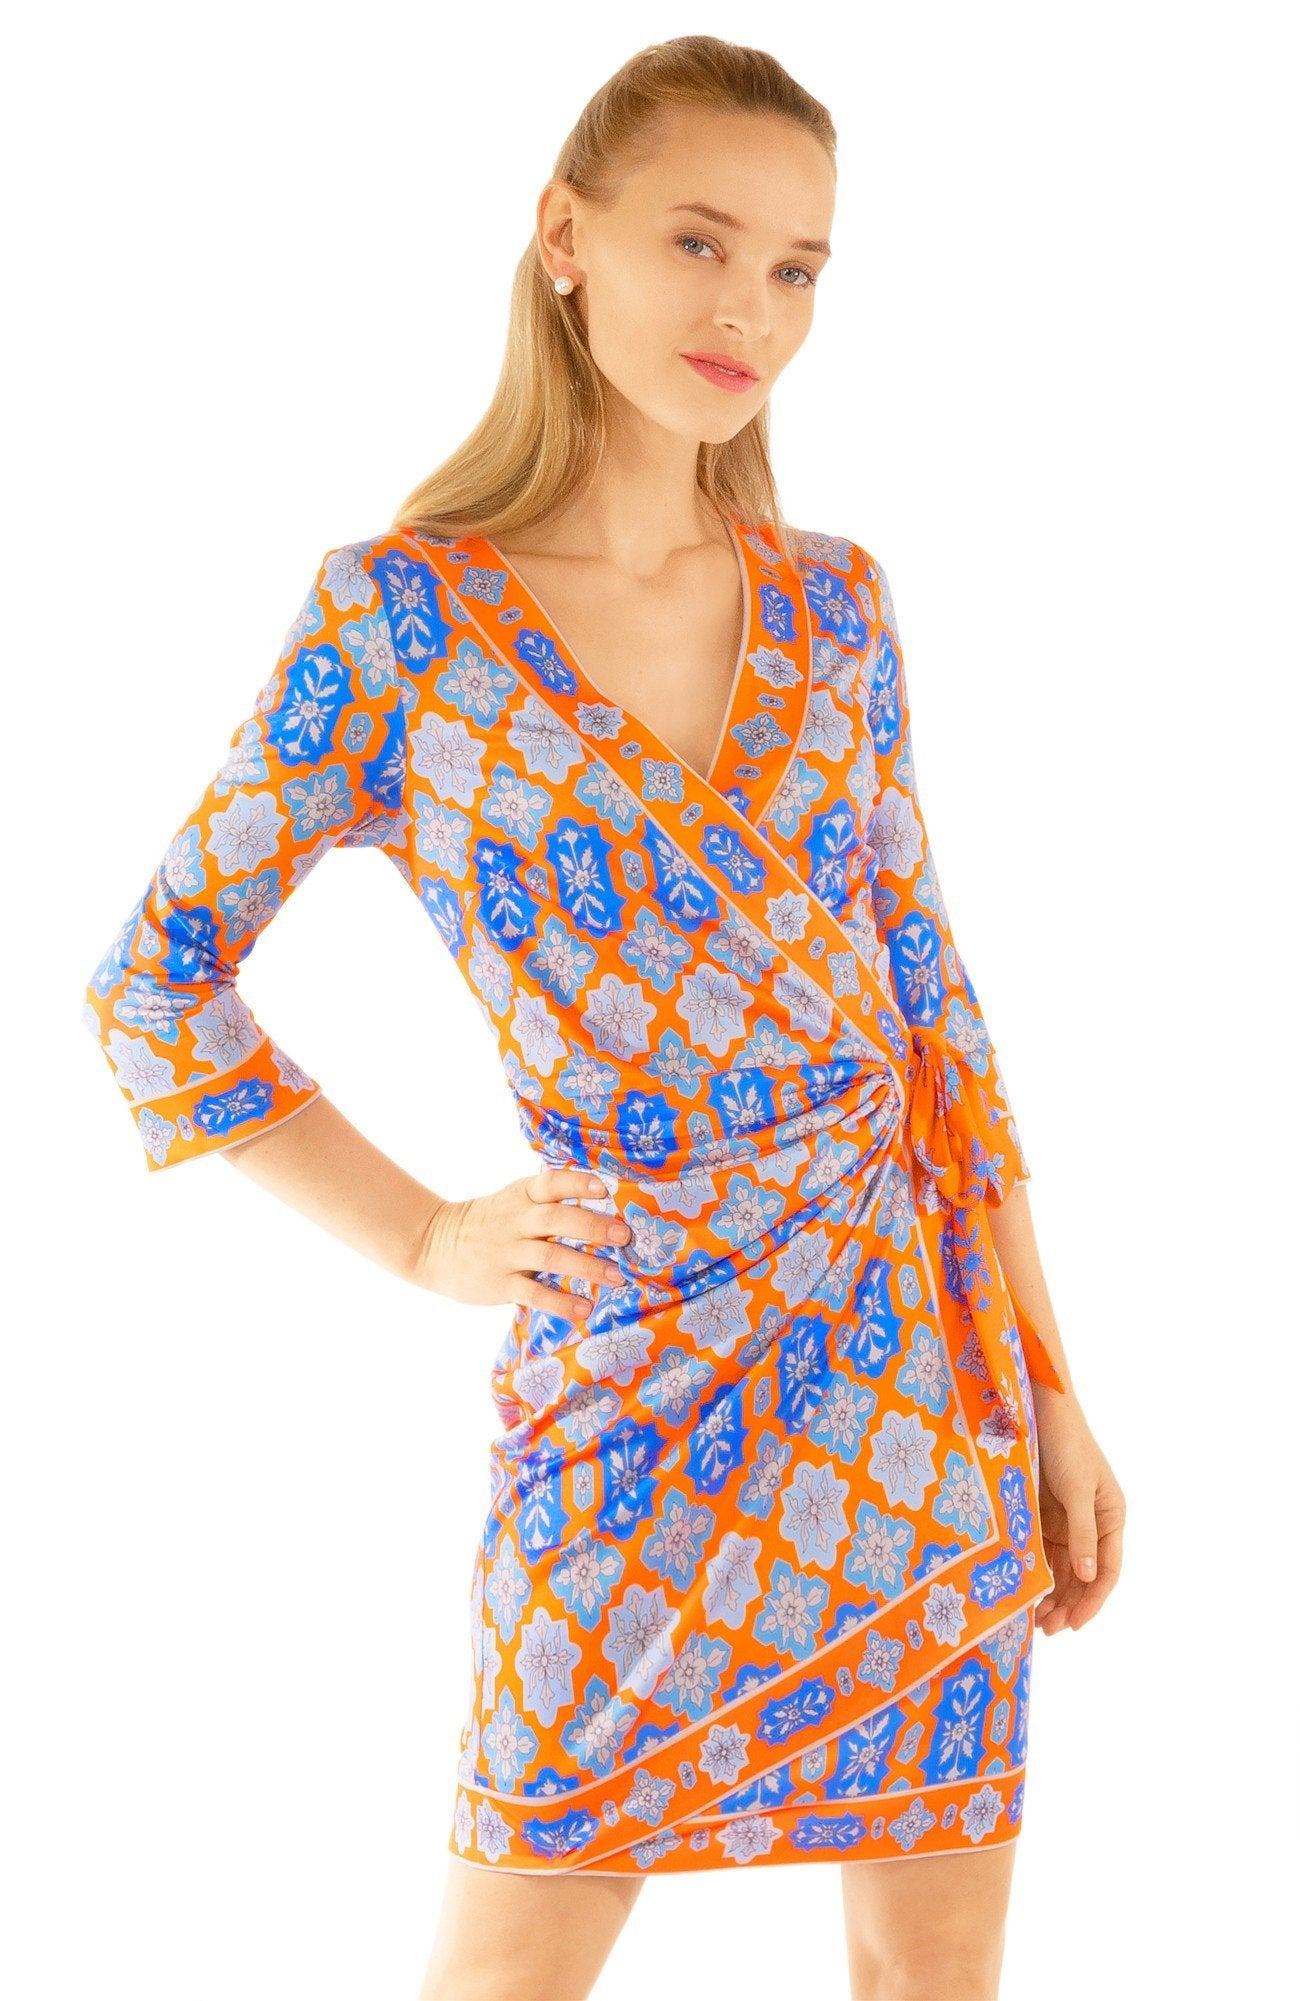 WRAP DRESS-HAVELI (XS and Small Only) - Molly's! A Chic and Unique Boutique